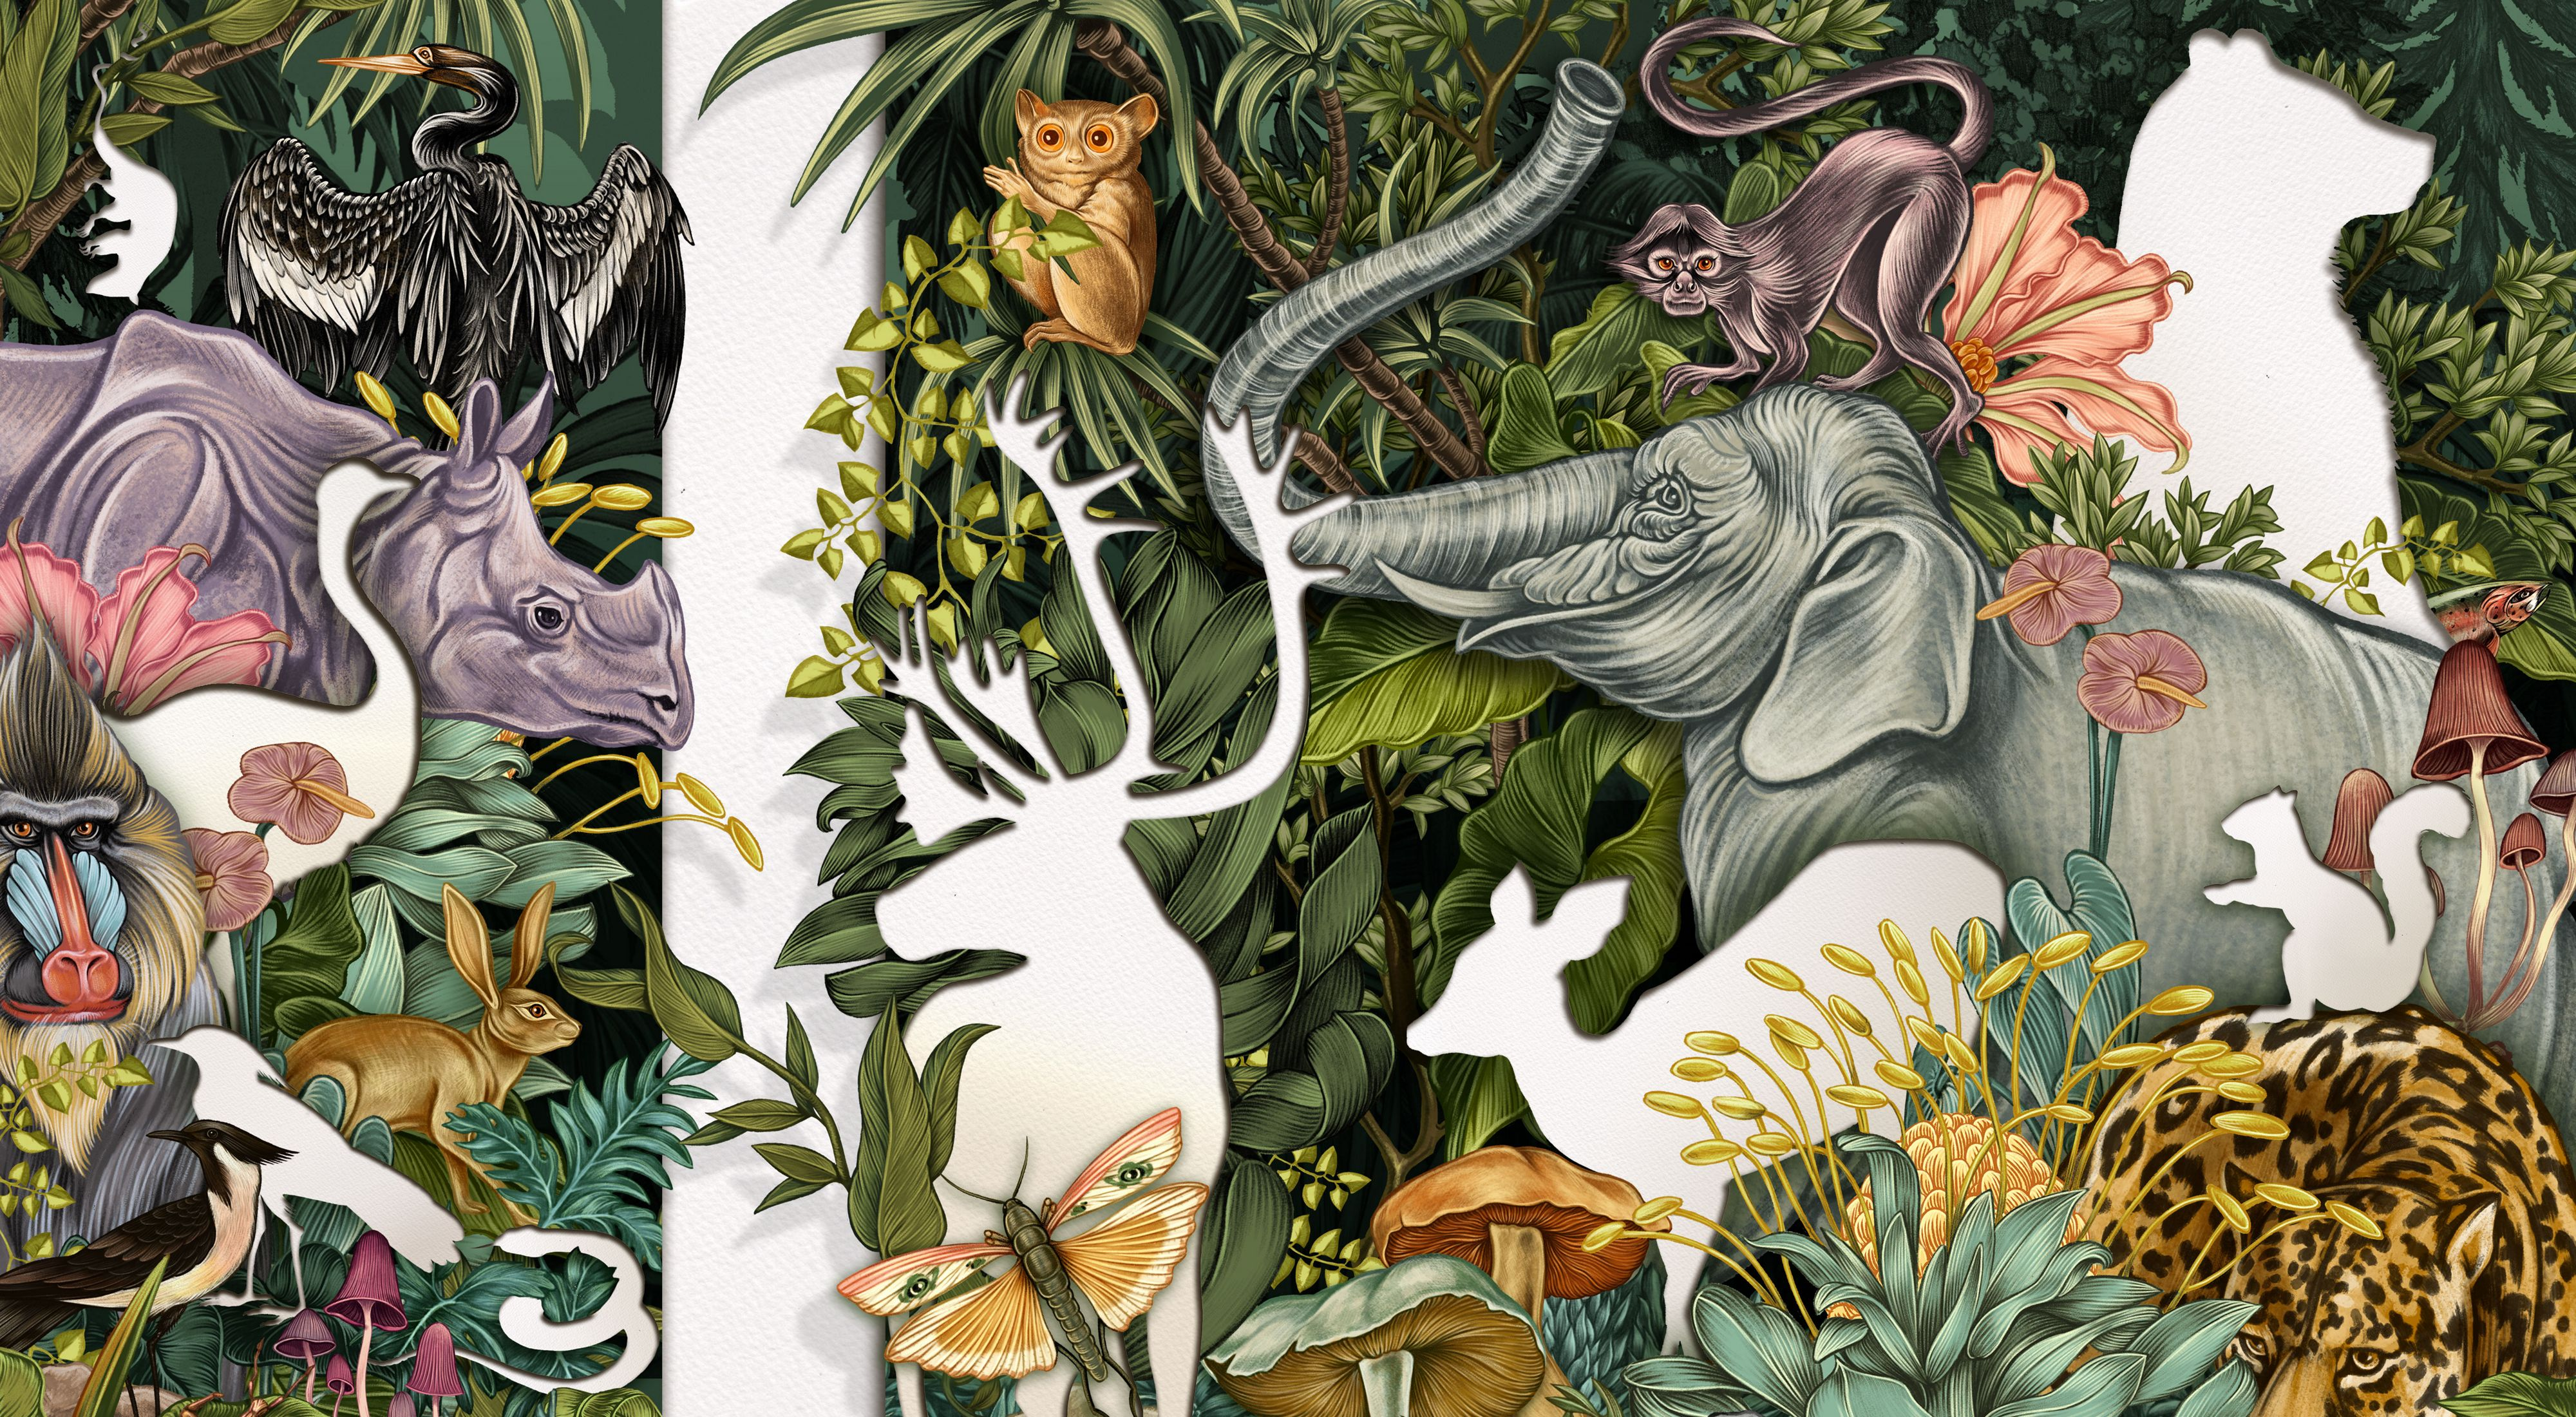 A color illustration shows many plants and animals with some missing as empty silhouettes.